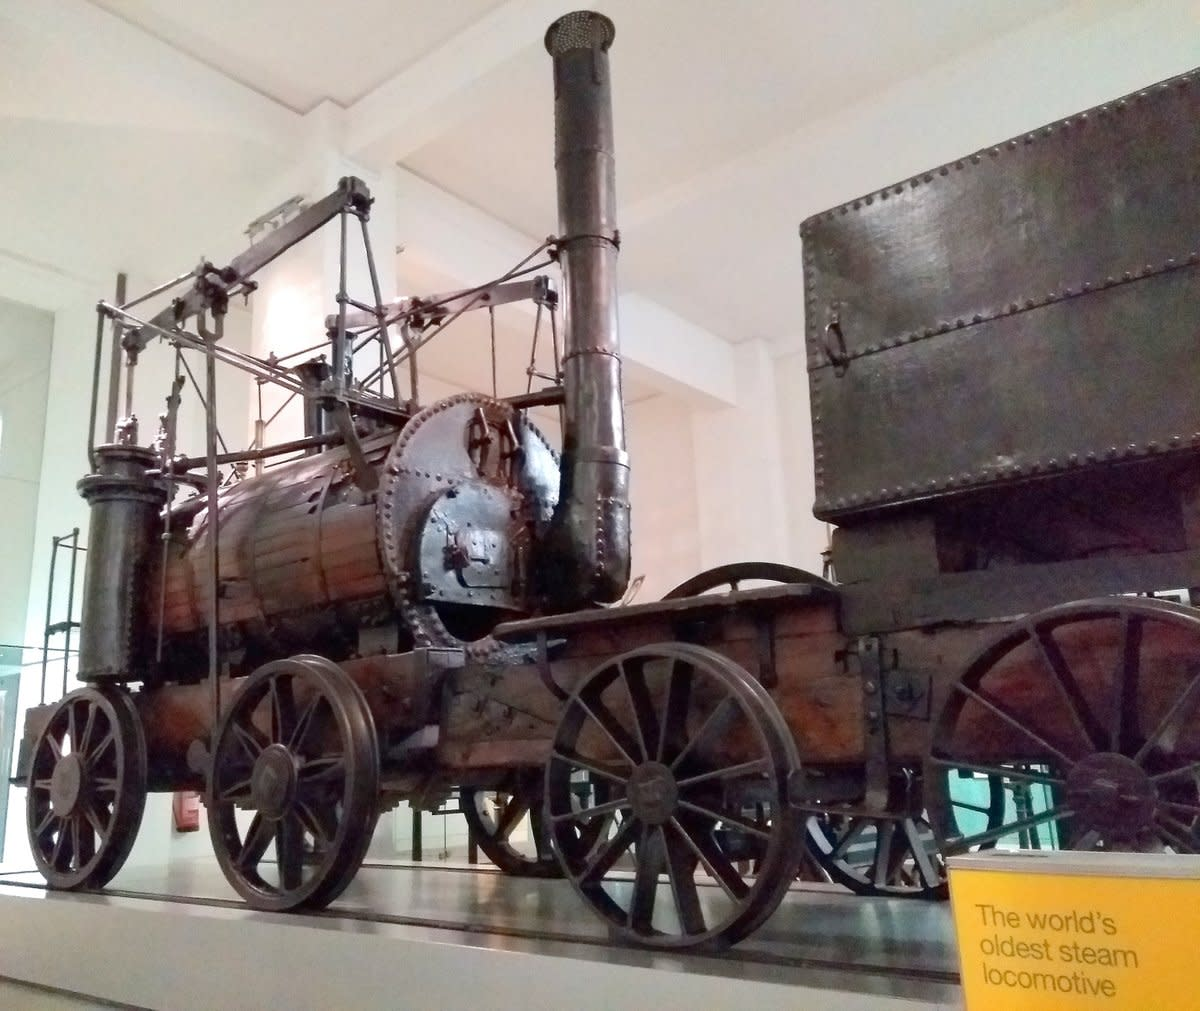 """Puffing Billy"", the world's oldest steam locomotive constructed in 1814 - On view in the Science Museum, London"